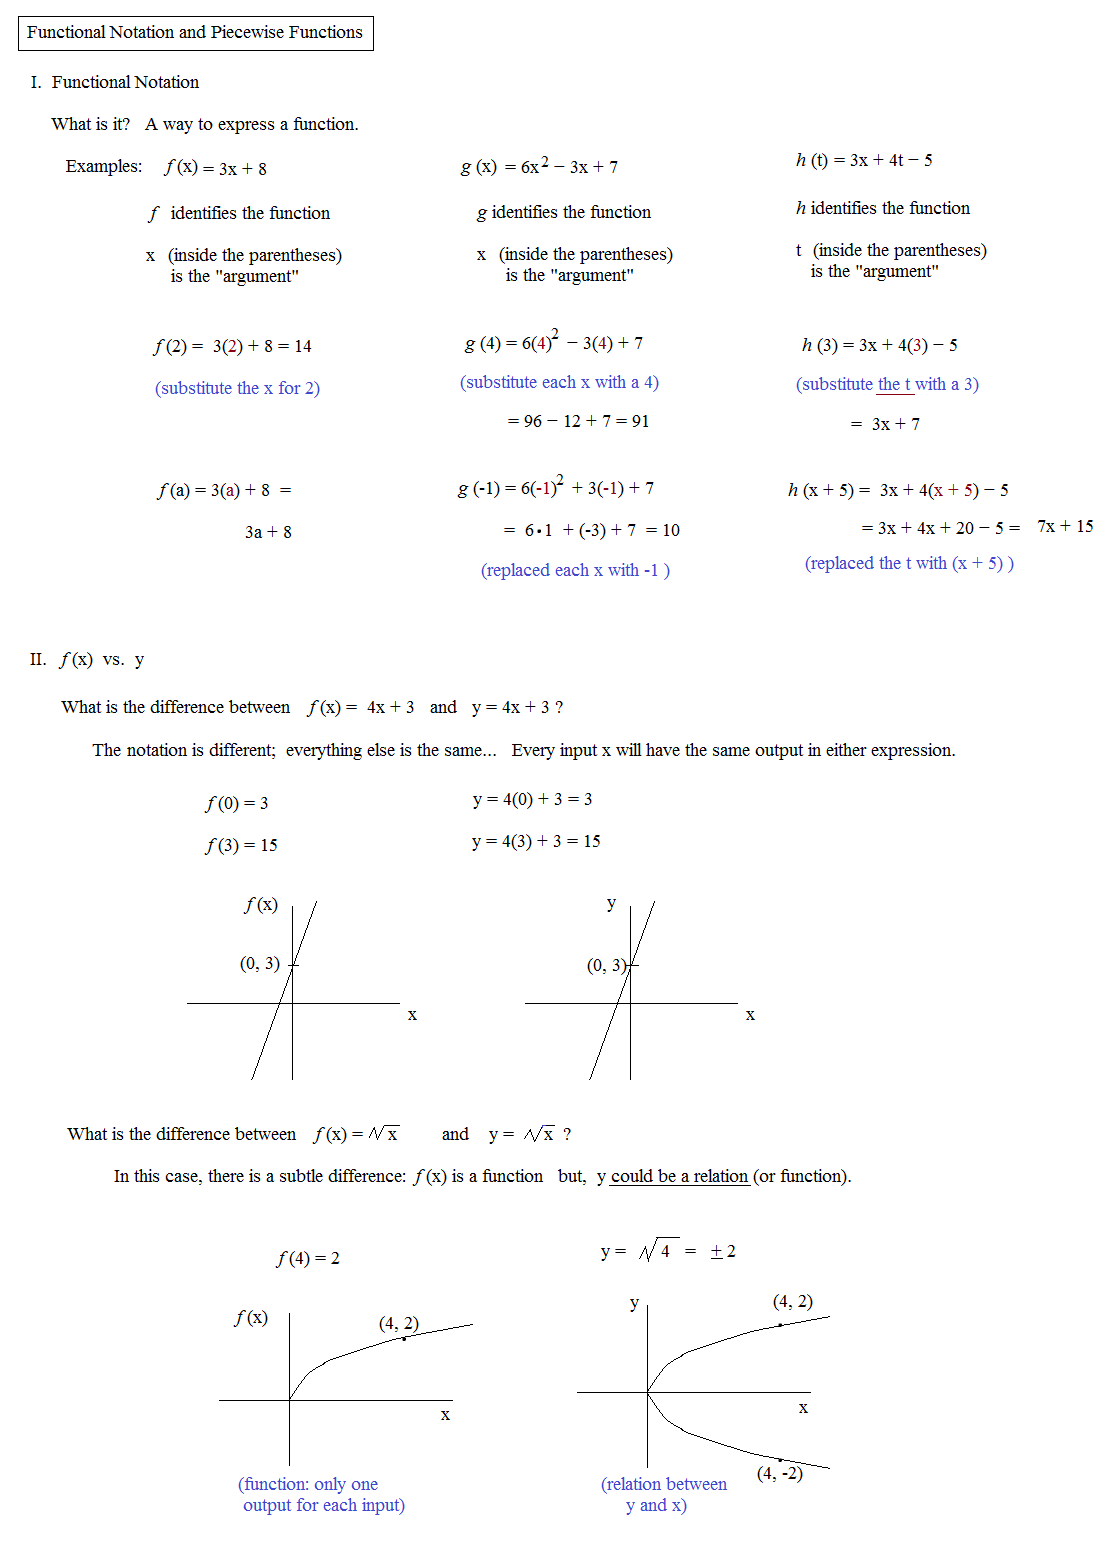 Worksheets Function Notation Worksheet With Answers function notation worksheet with answers free worksheets library scientific worksheets